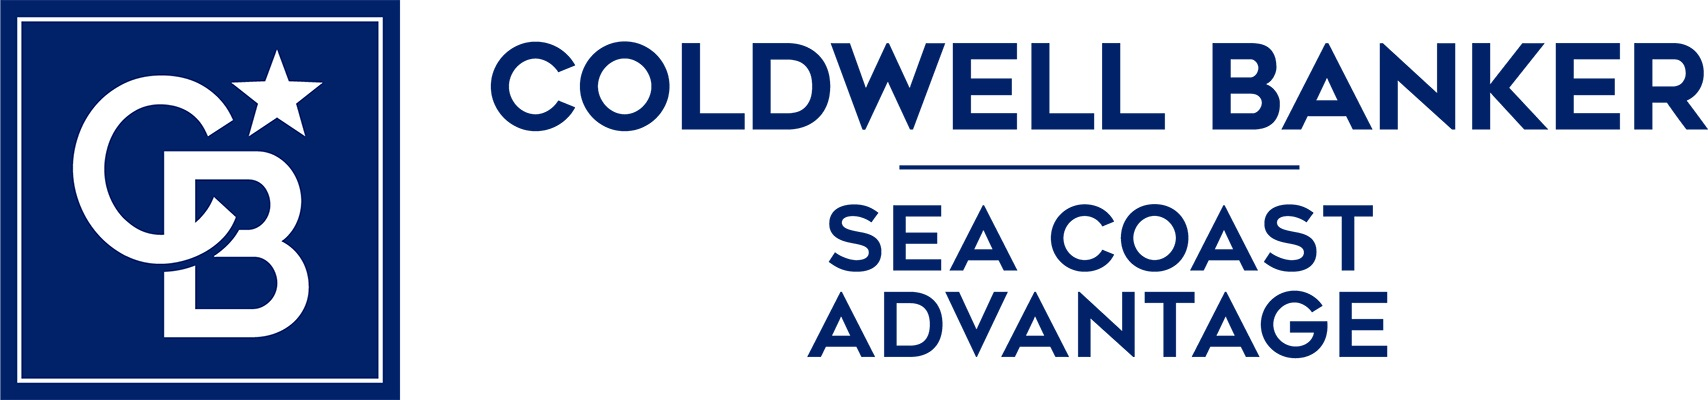 Sherry Lyons - Coldwell Banker Sea Coast Advantage Realty Logo